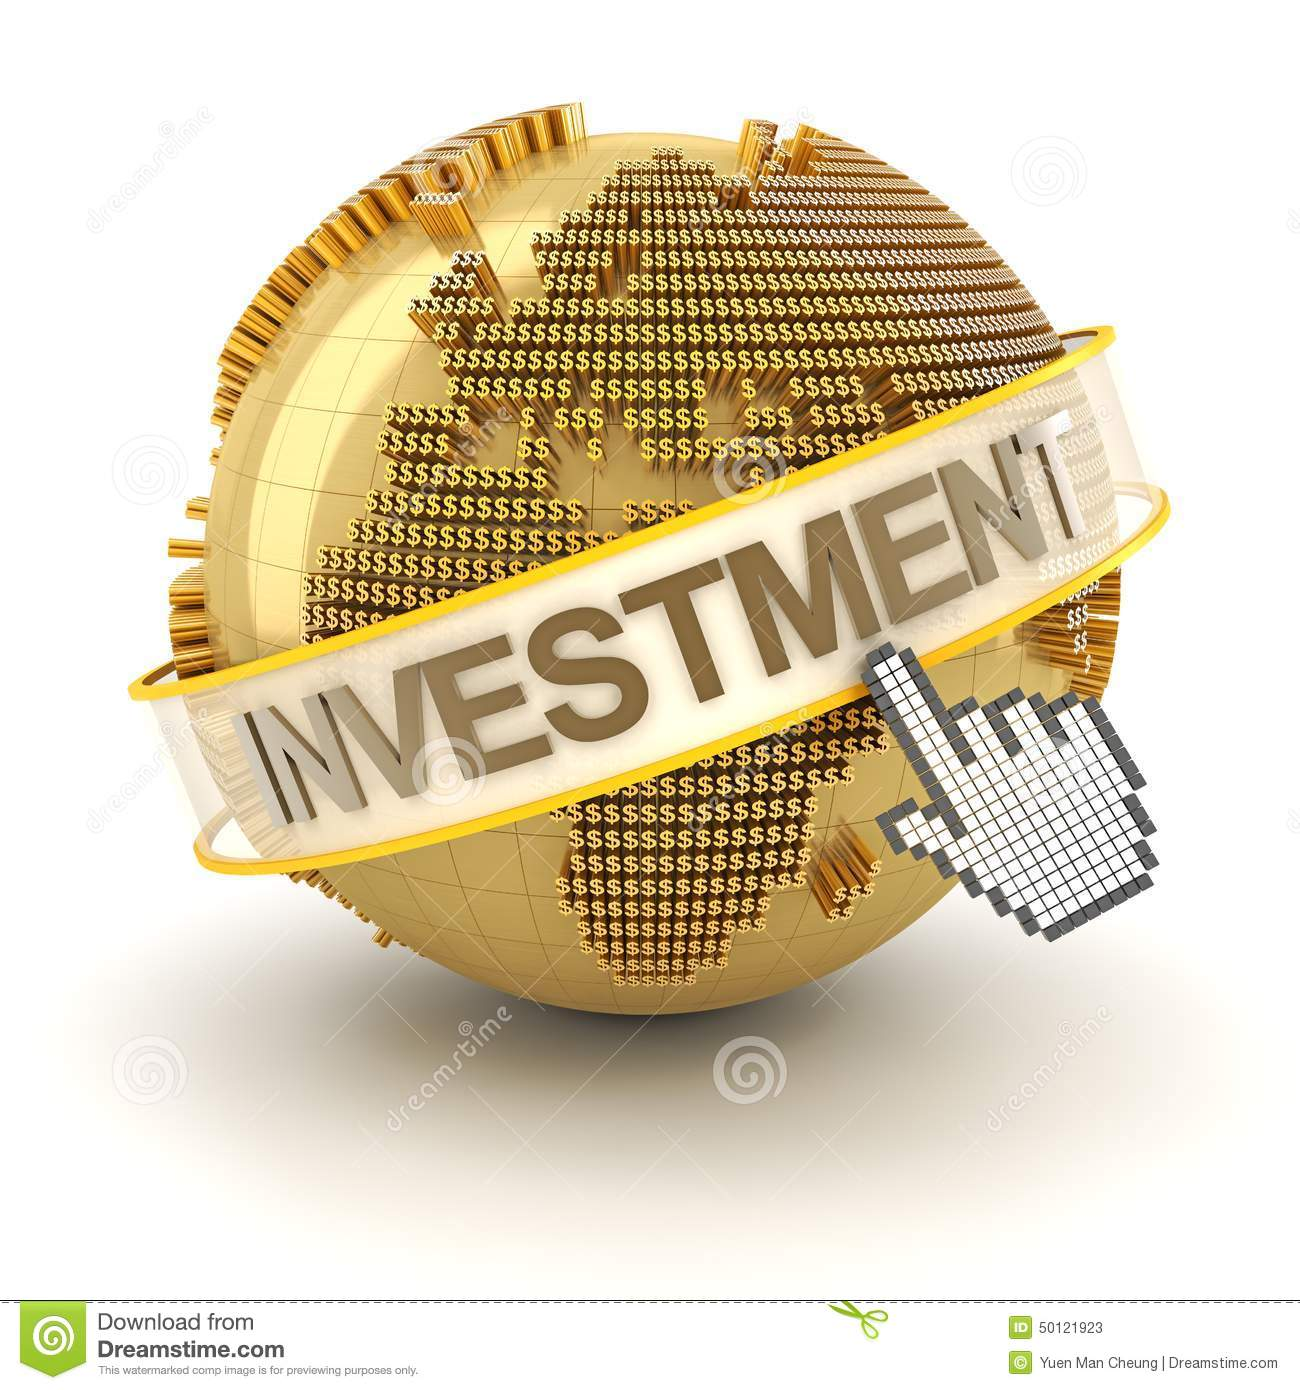 International trade and investment concepts